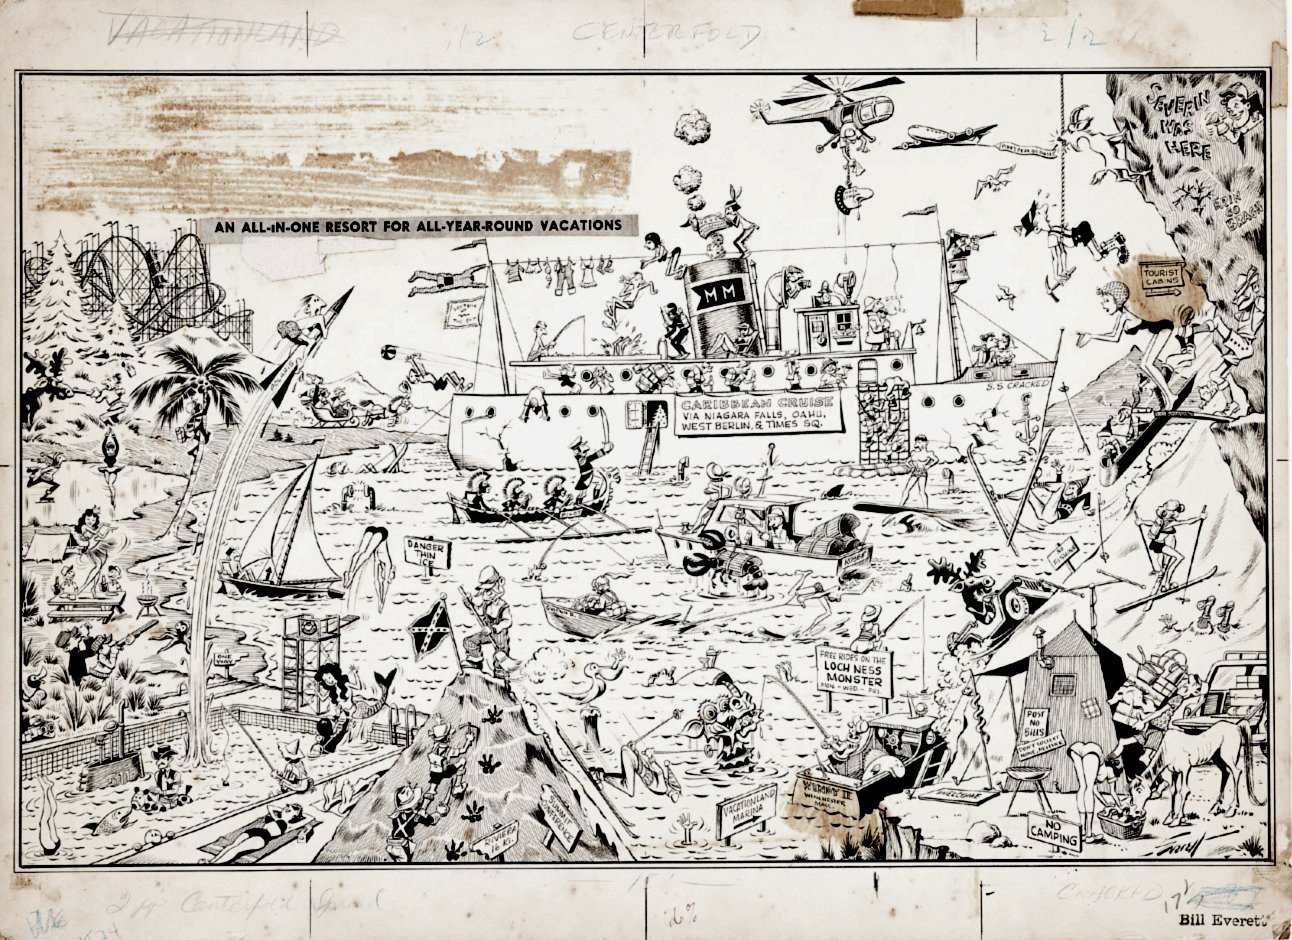 Cracked #24 Huge 2 Page Illustration Drawn on 1 Large Board (1962)